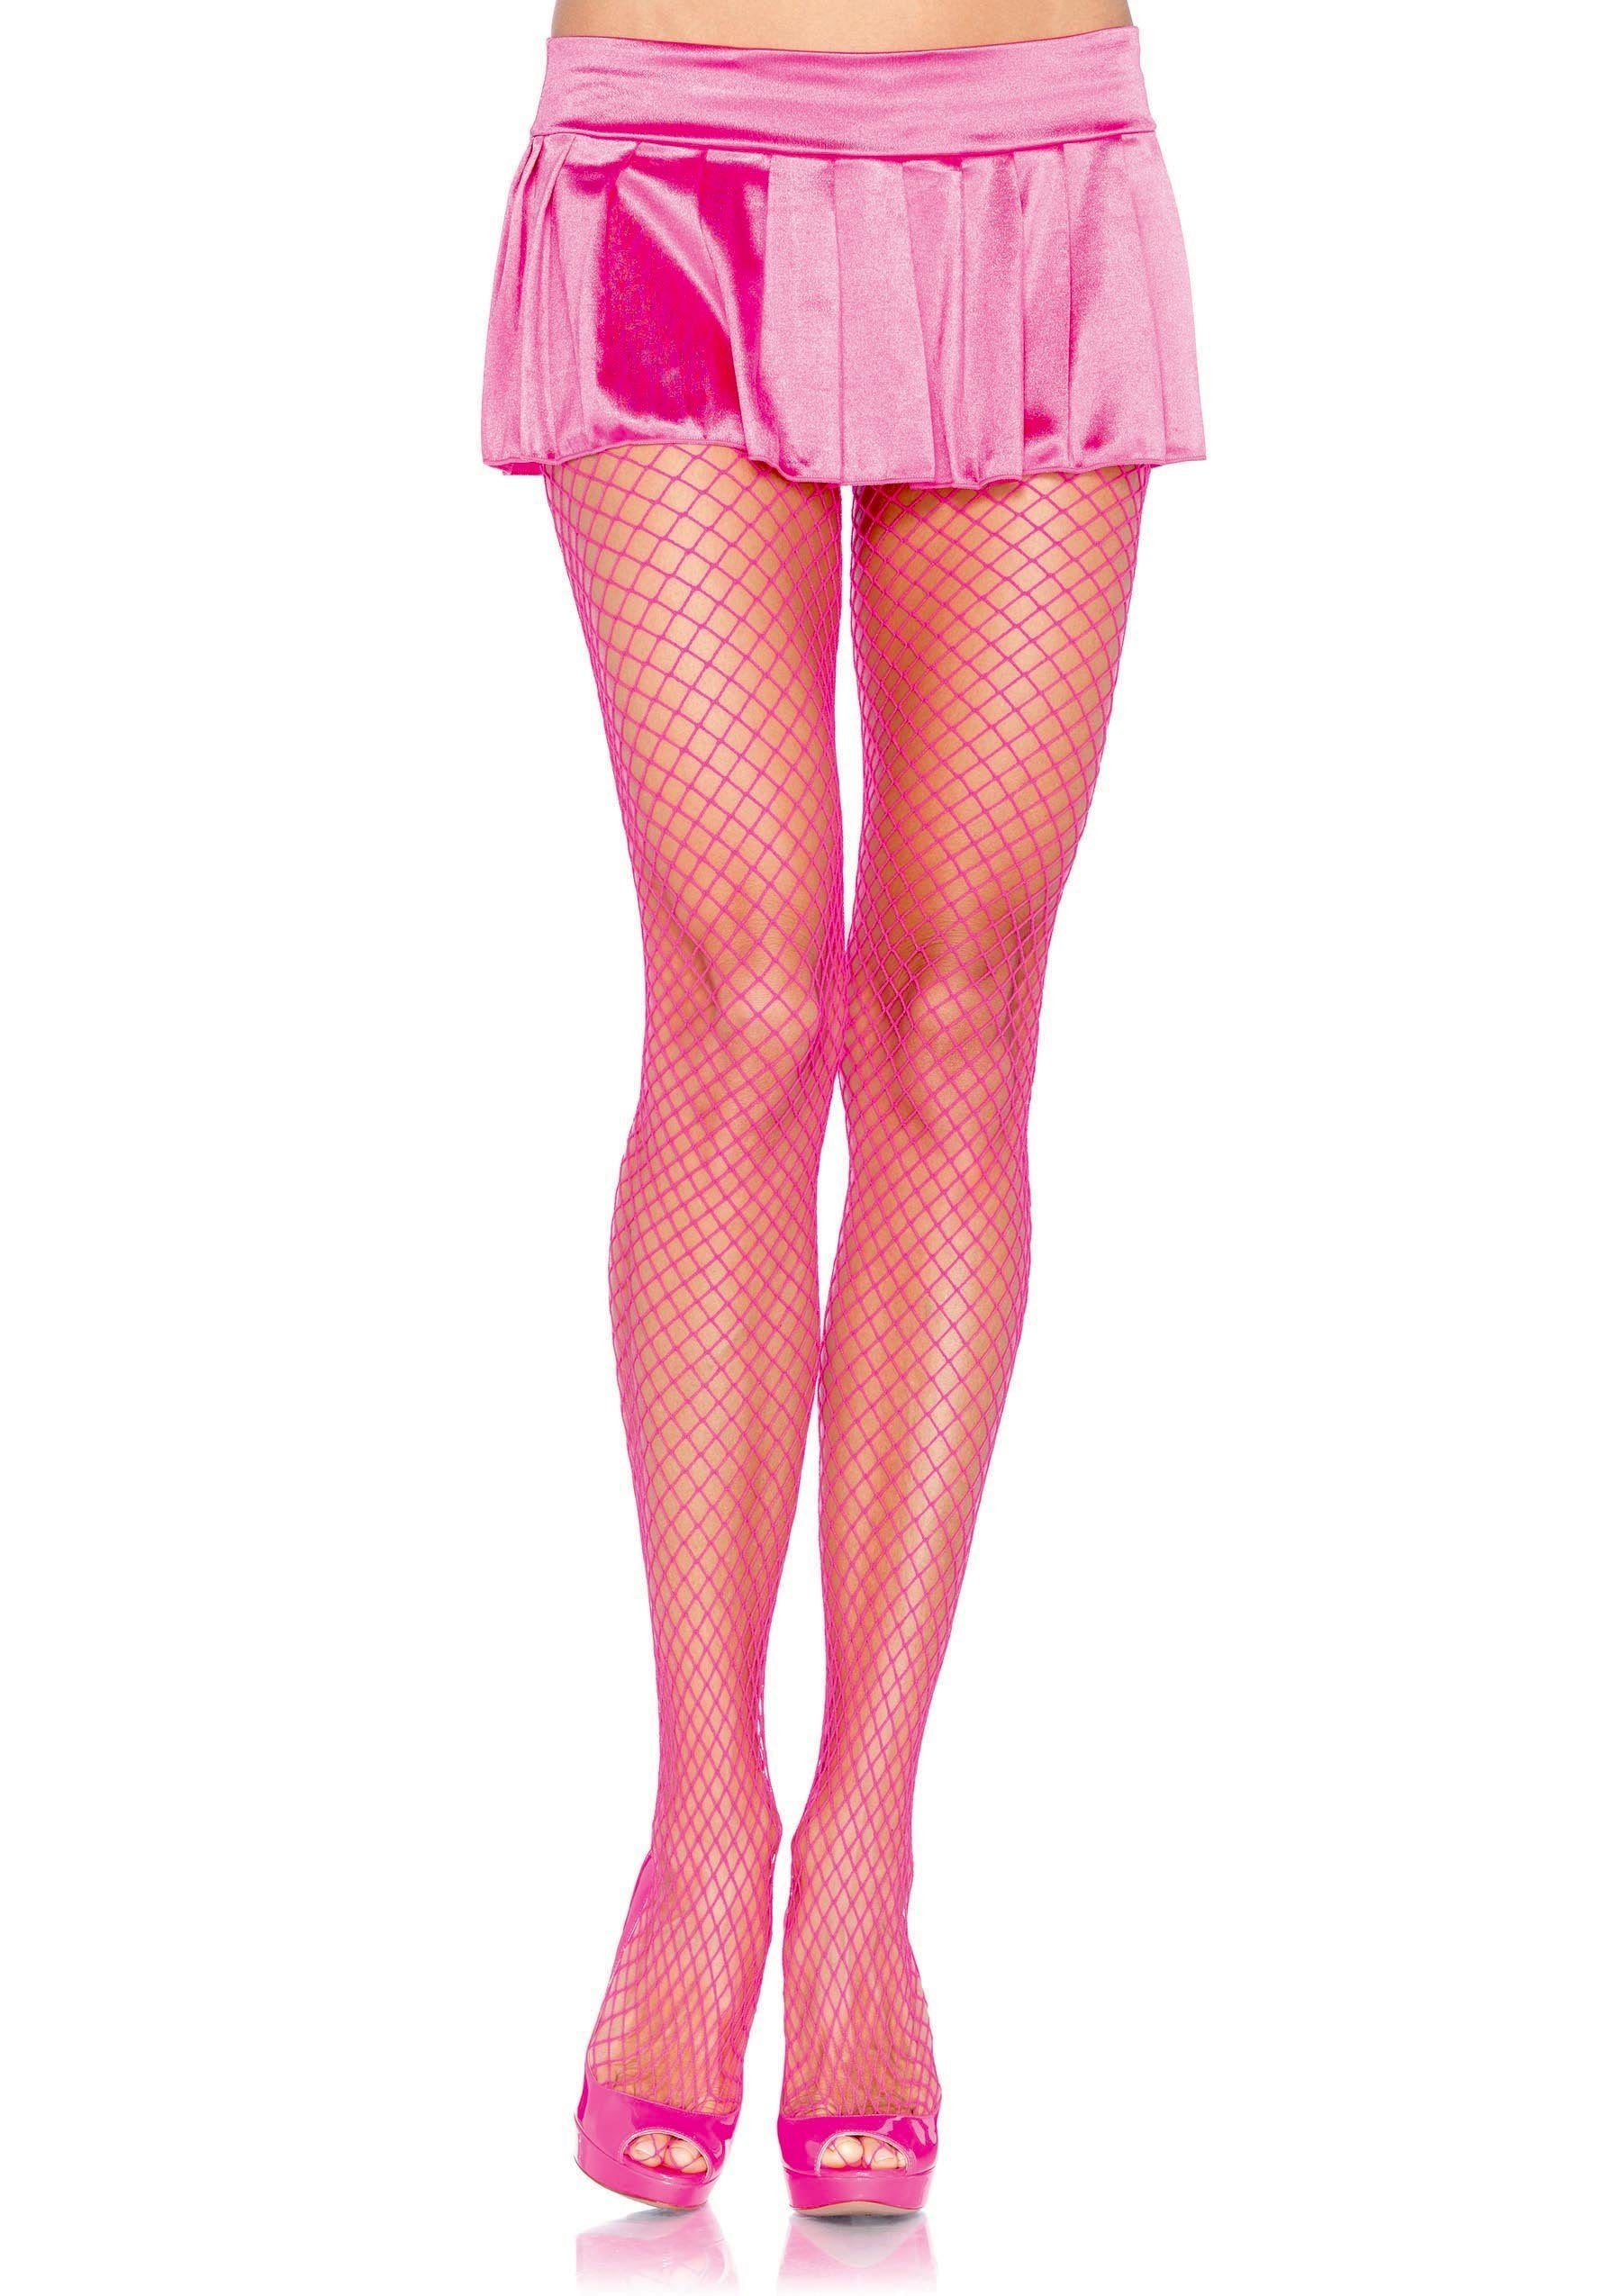 Leg Avenue Costume Accessories NEON PINK / O/S Spandex Fishnet Pantyhose